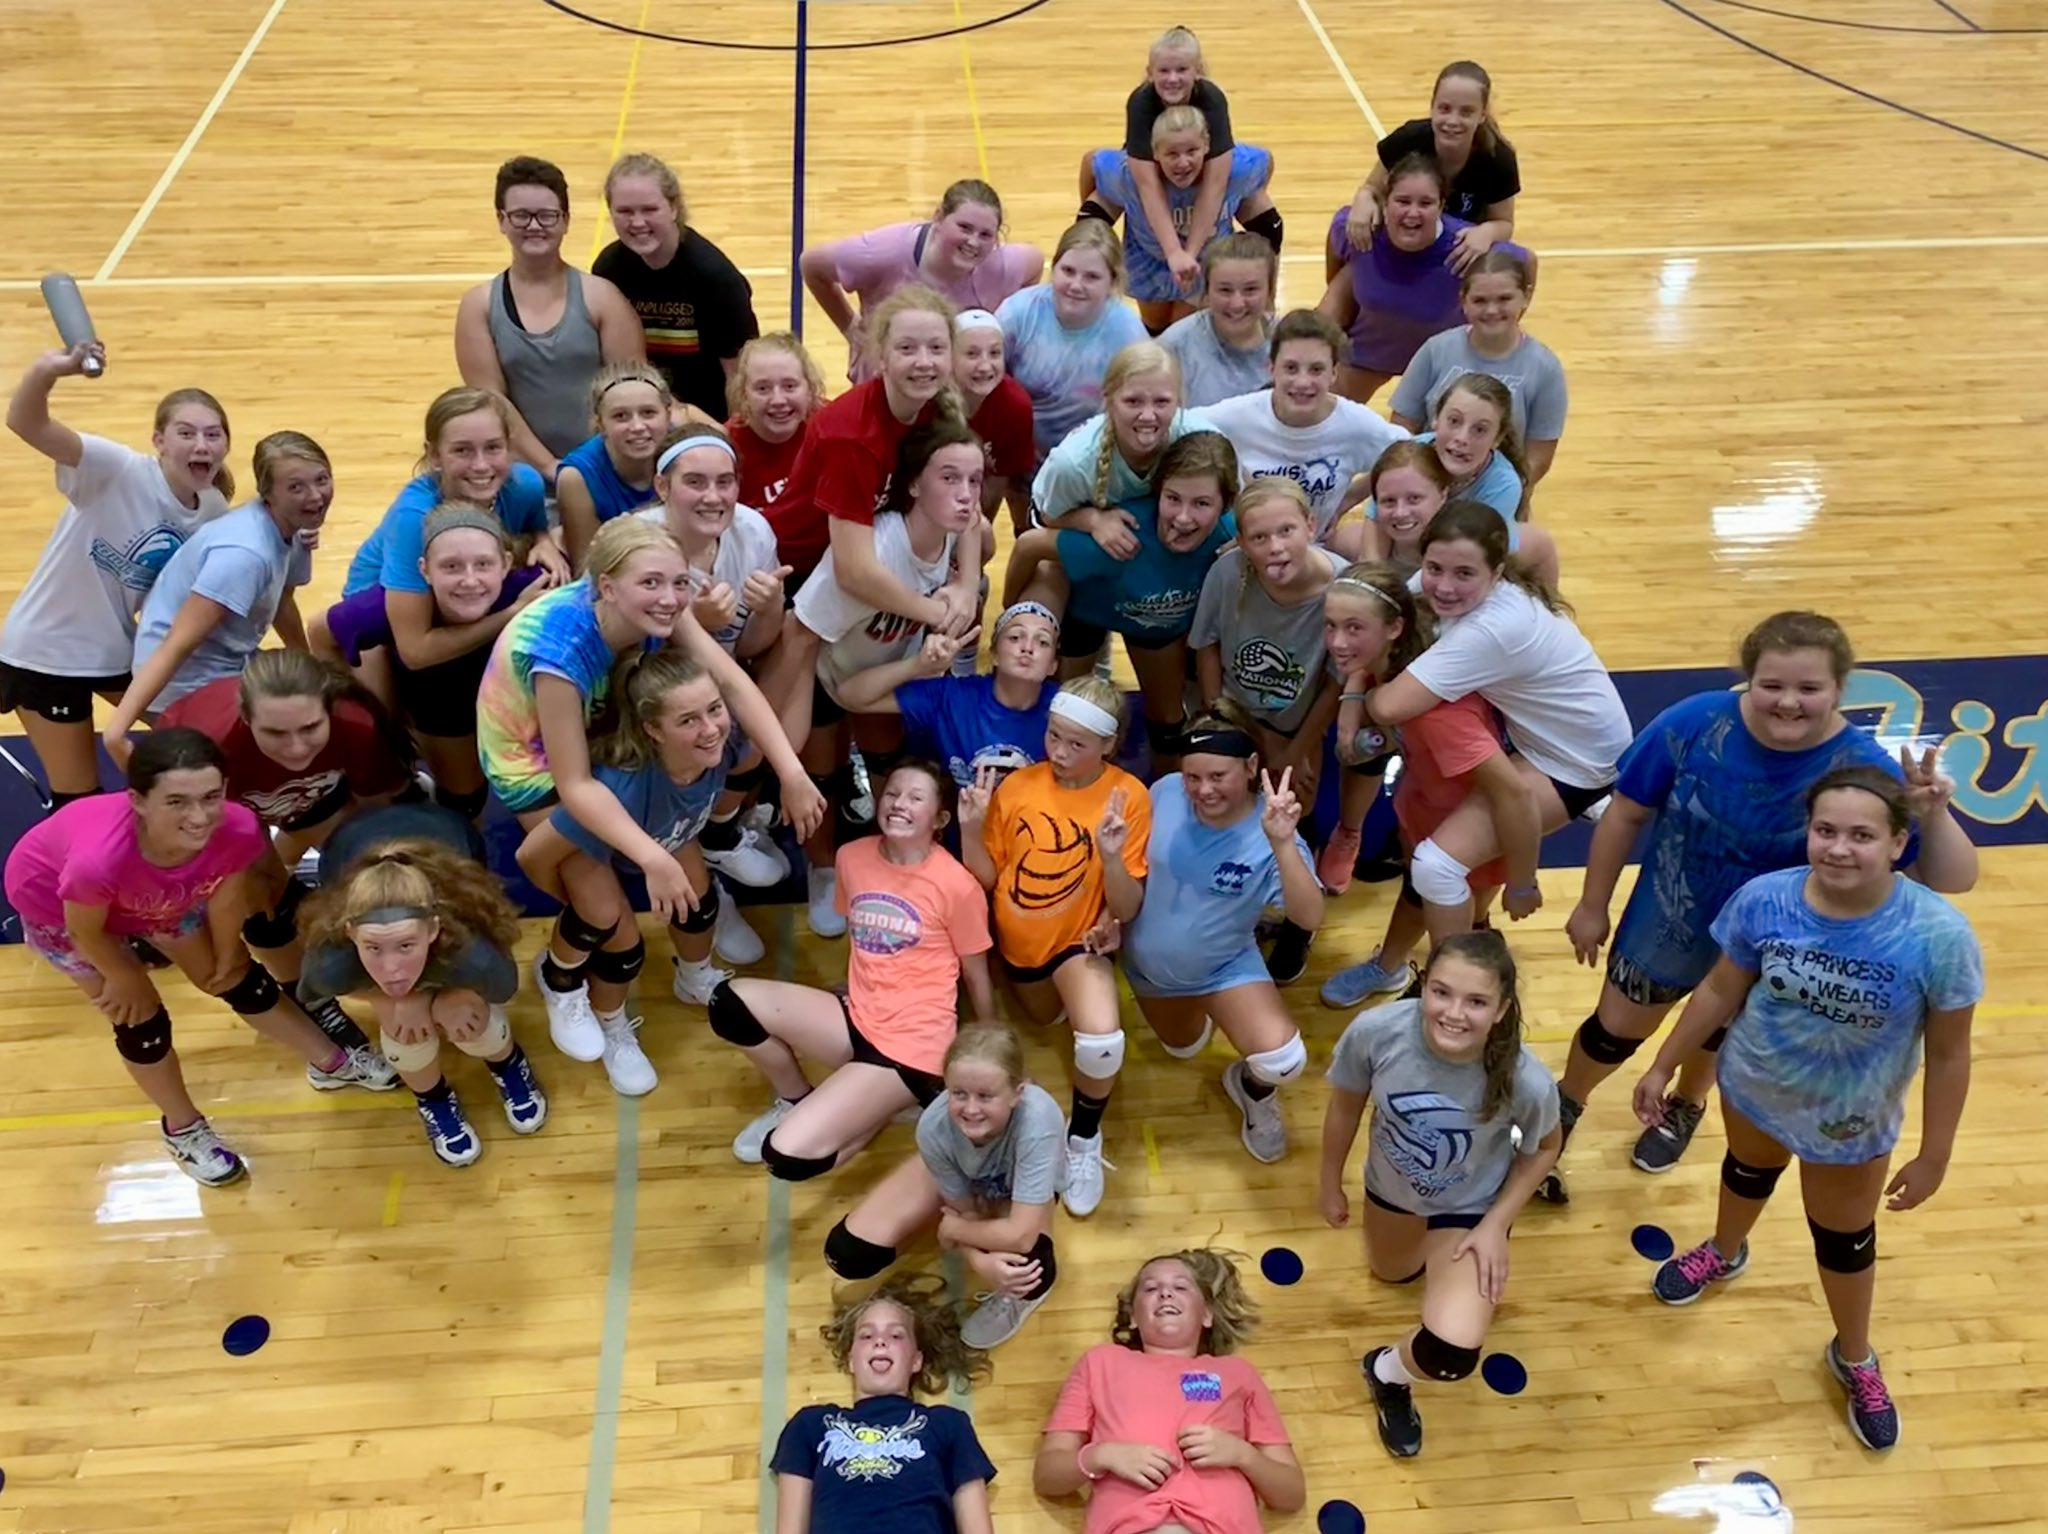 Another 45+ girls at open gym last night.   Only ONE more before practice officially starts.  #dedicated https://t.co/D9ug4xSGPY